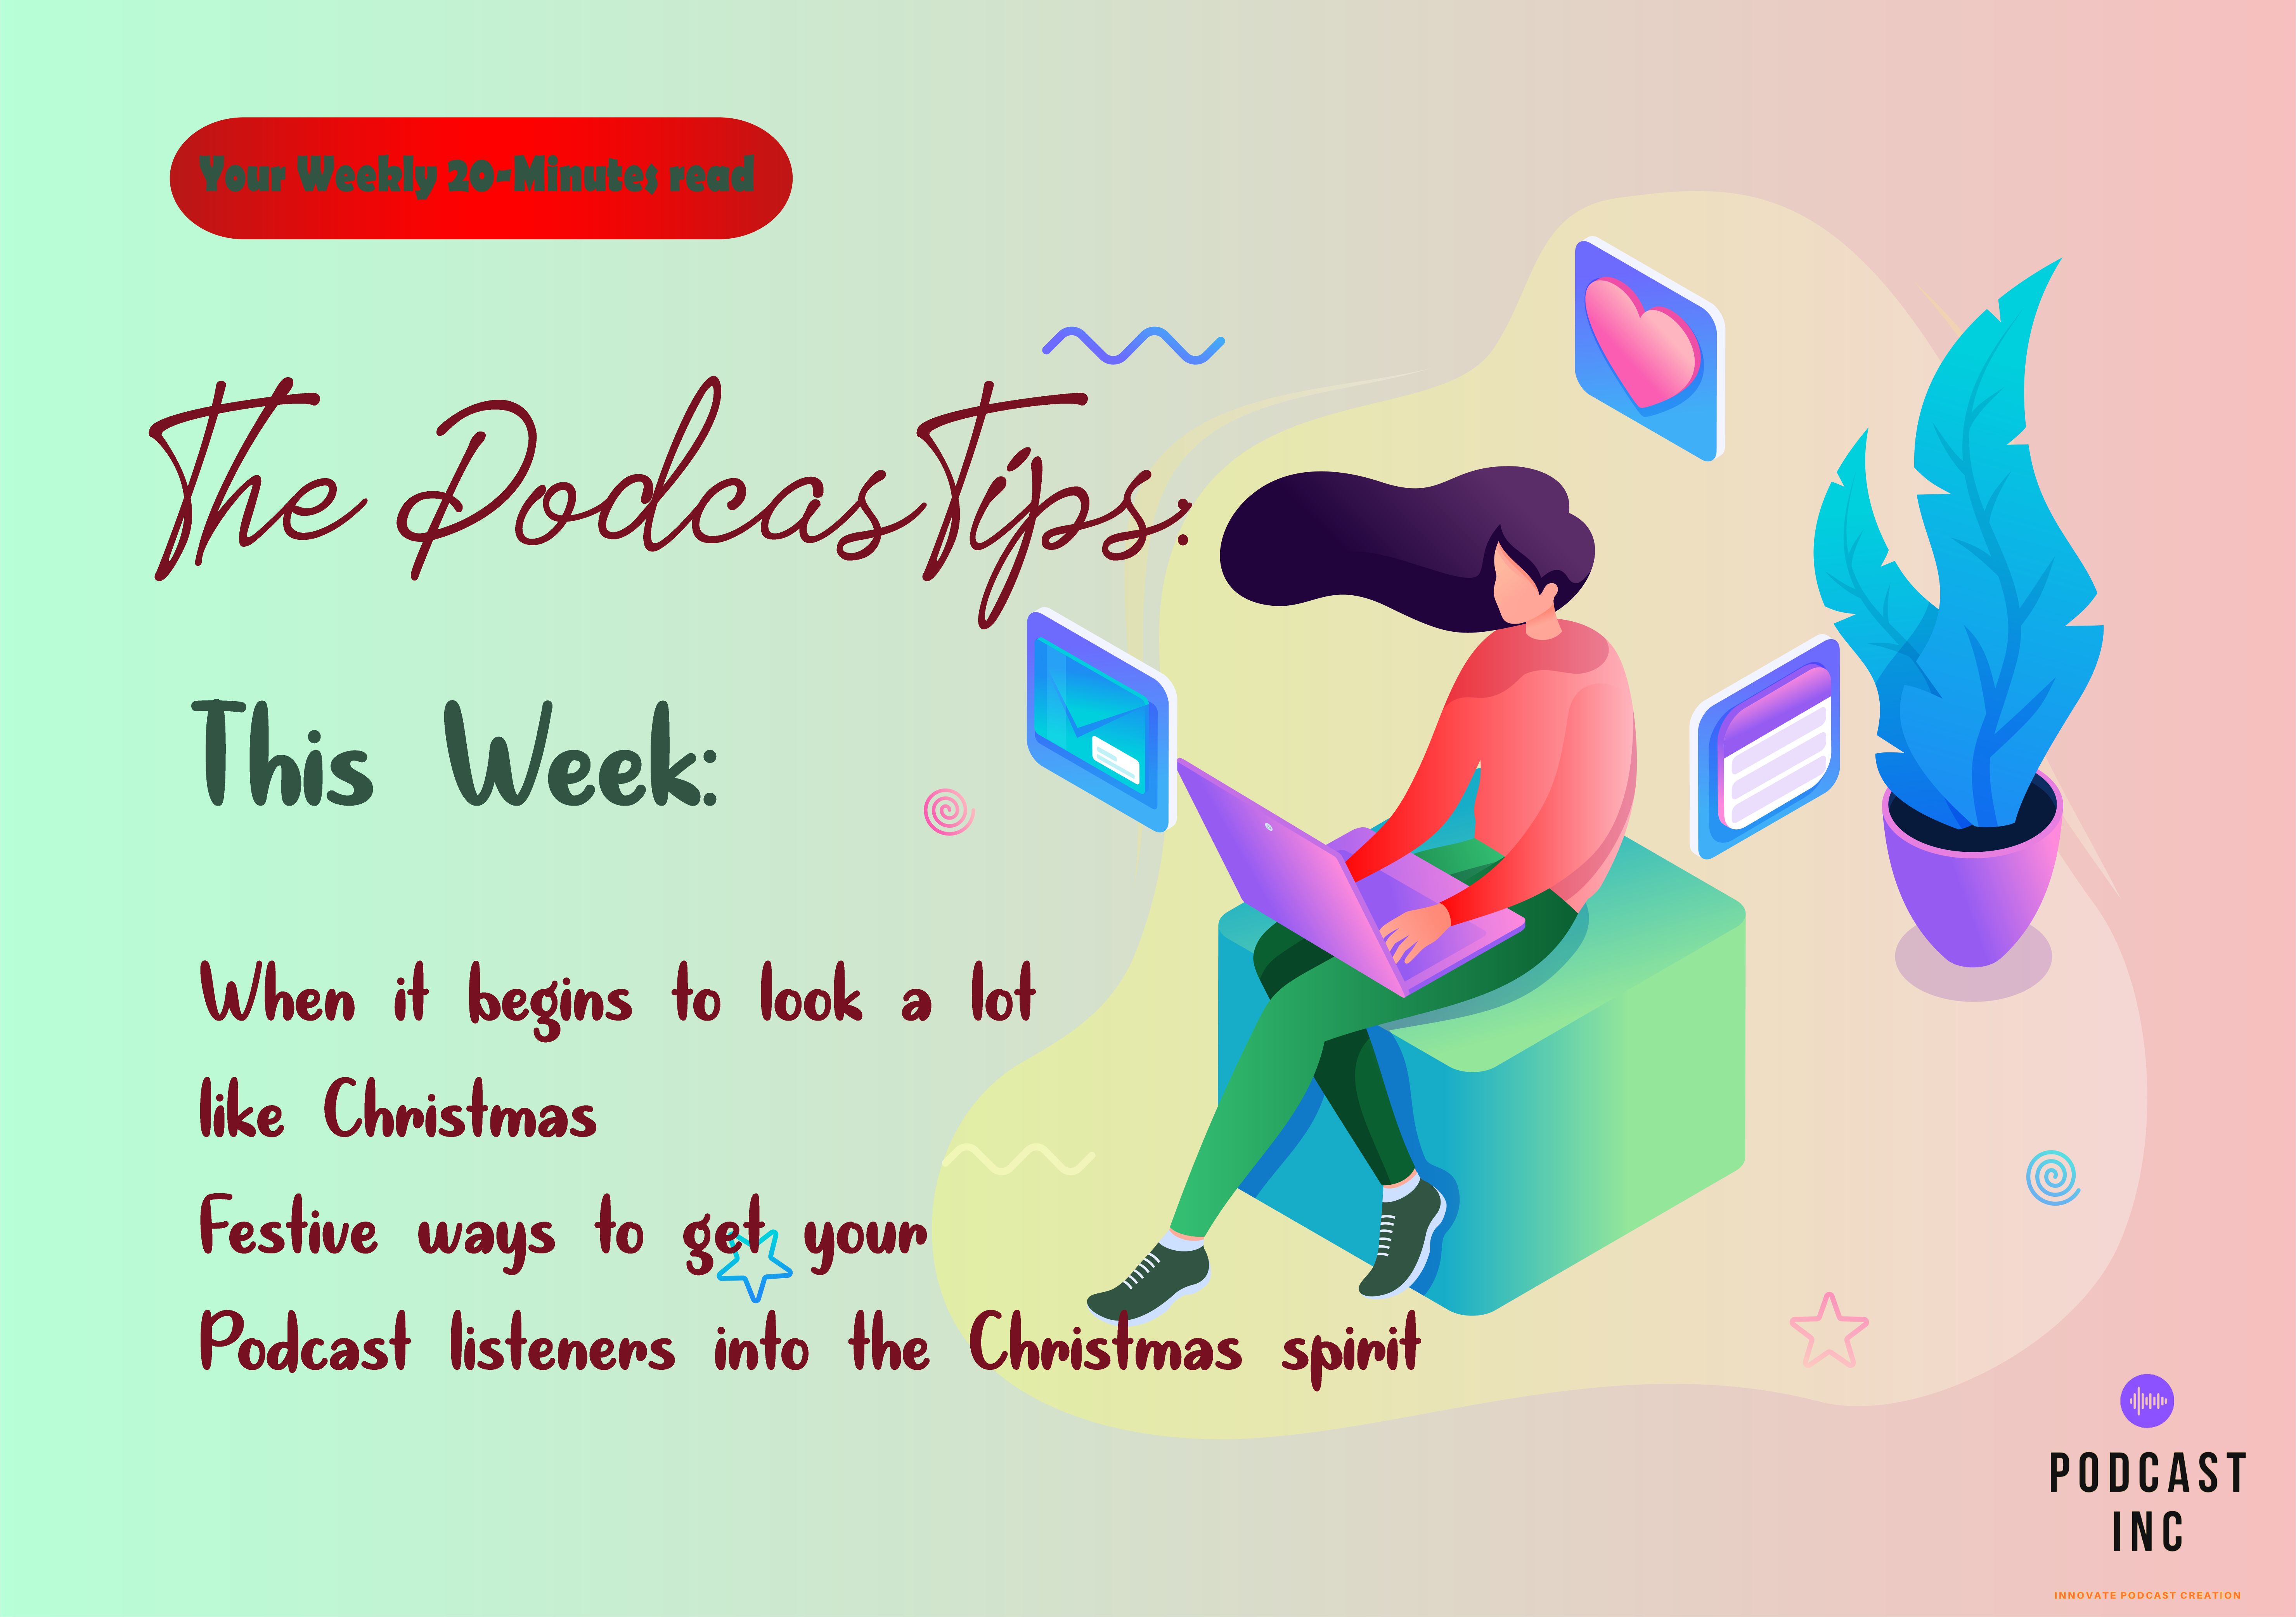 When it Begins to Look a lot Like Christmas: Festive Ways to Get Your Podcast Listeners Into The Christmas Spirit